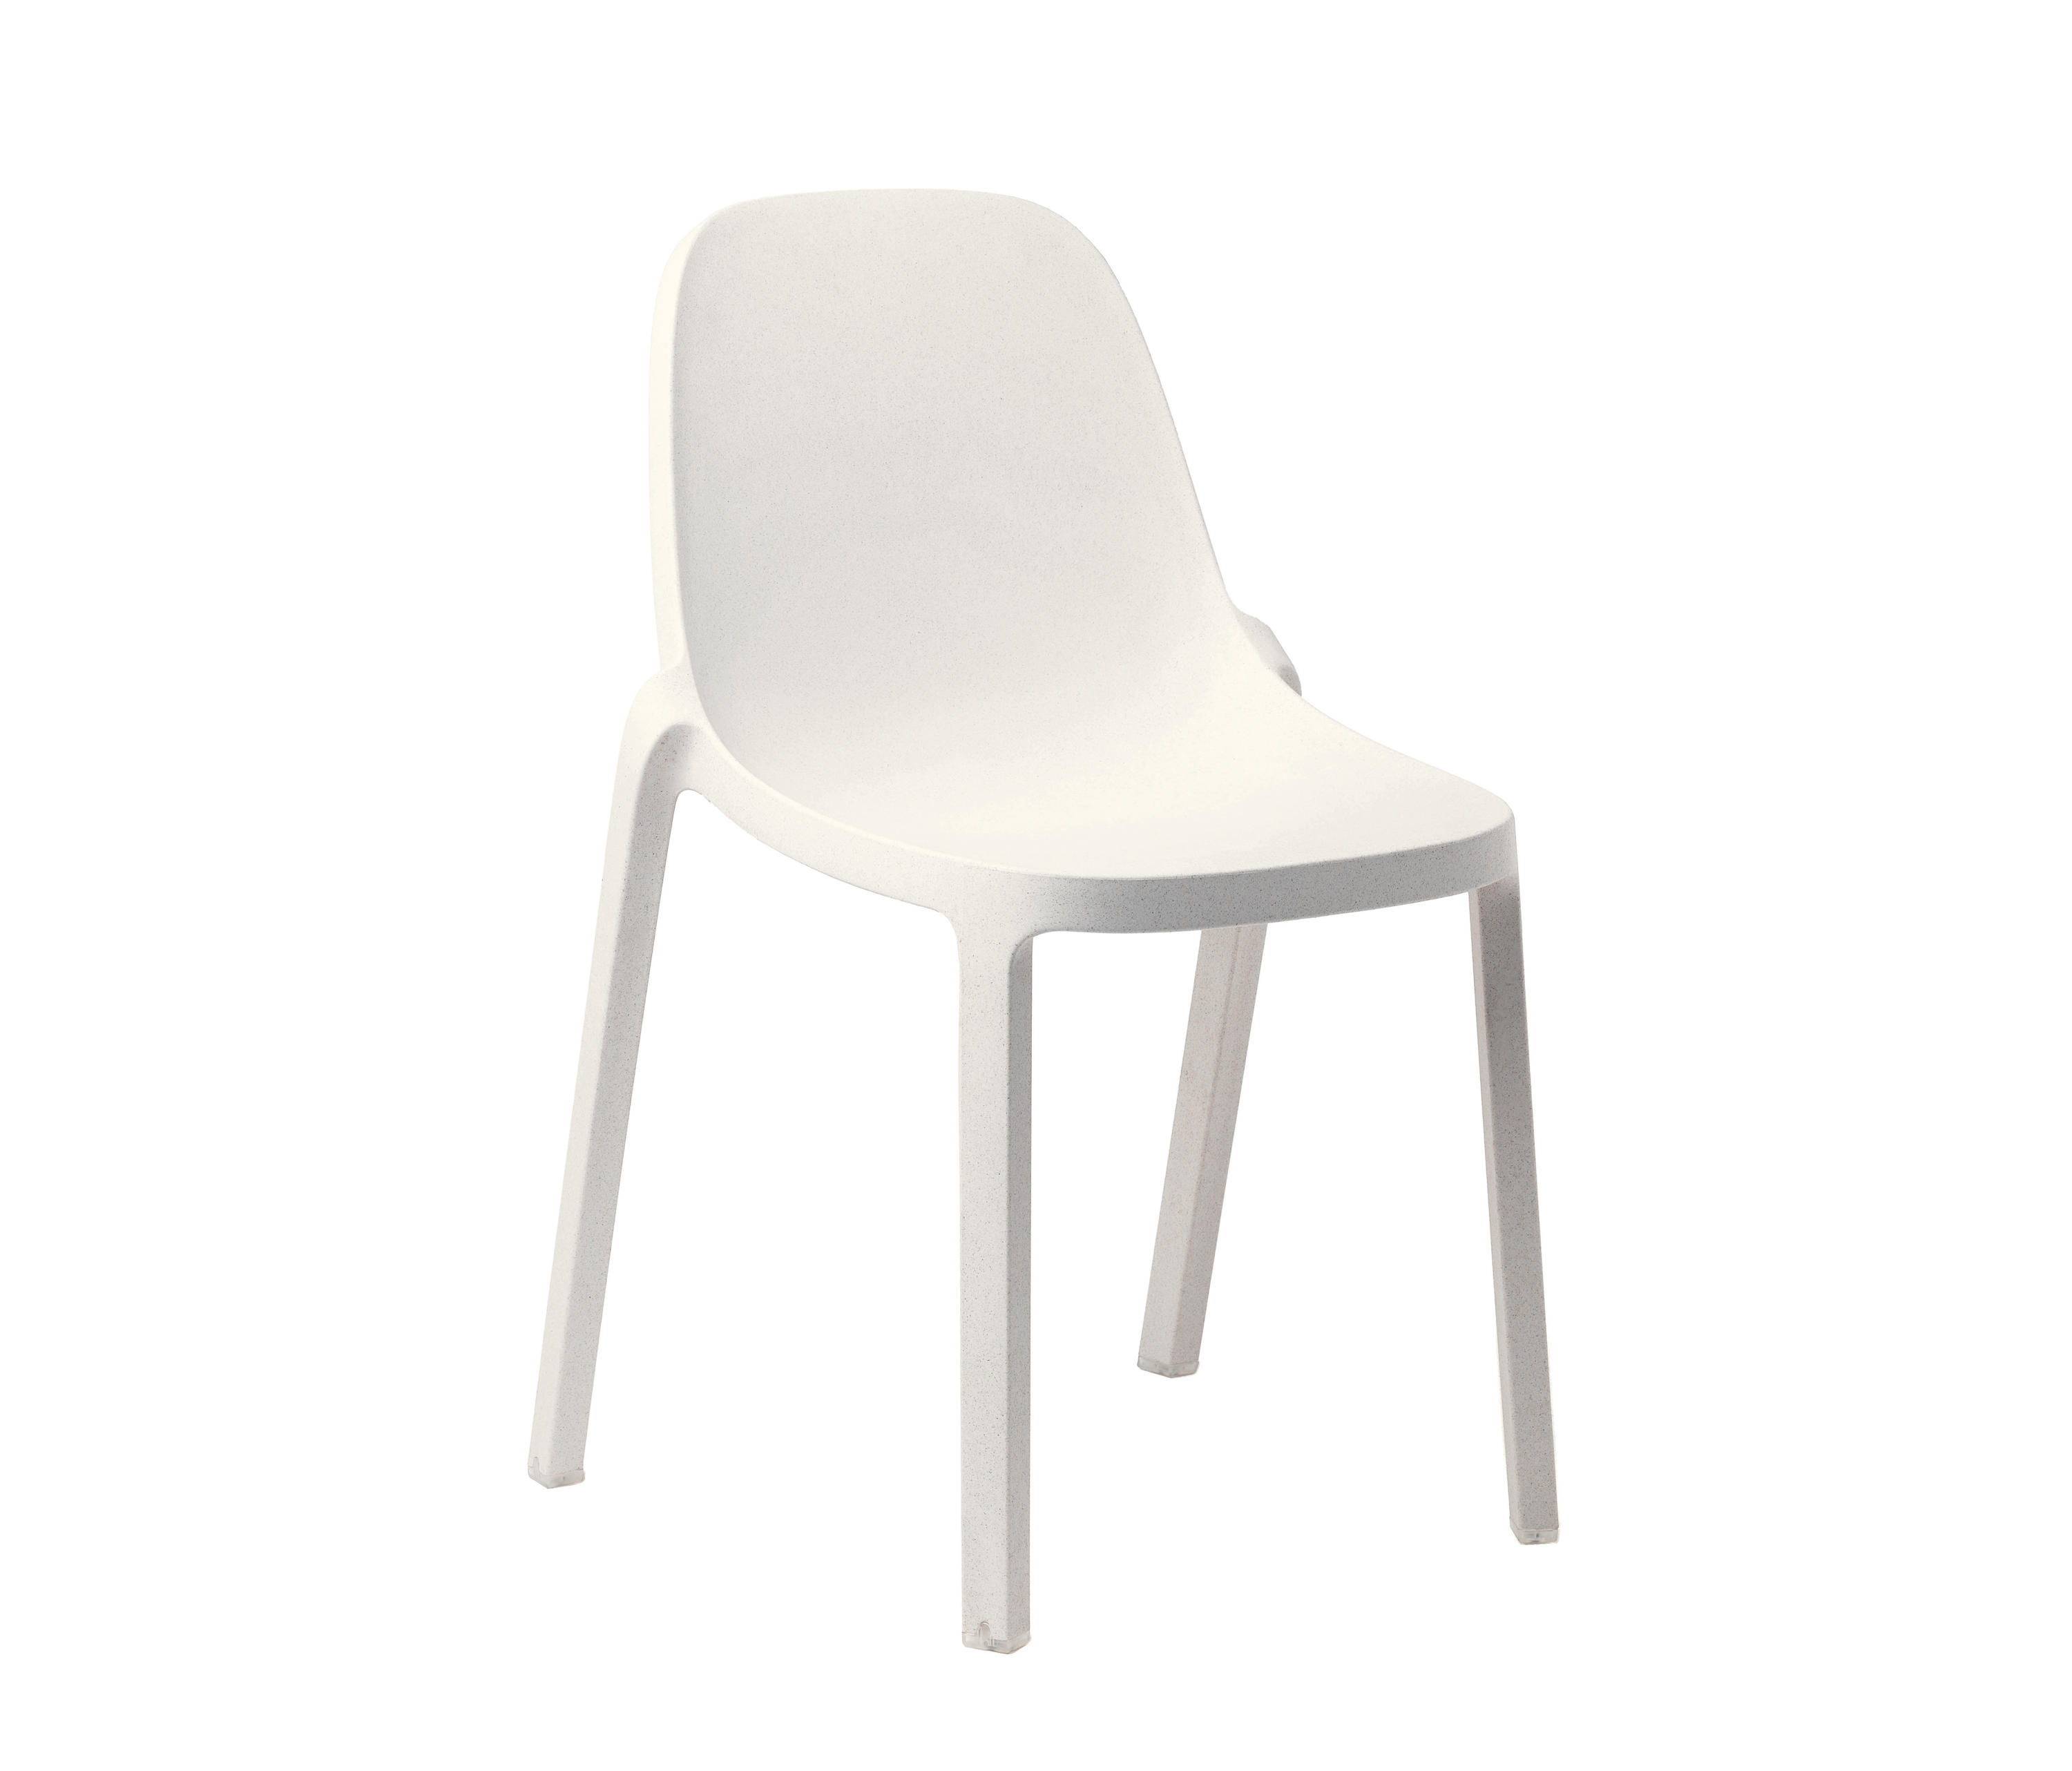 Broom Chair By Emeco Restaurant Chairs With Emeco Chairs